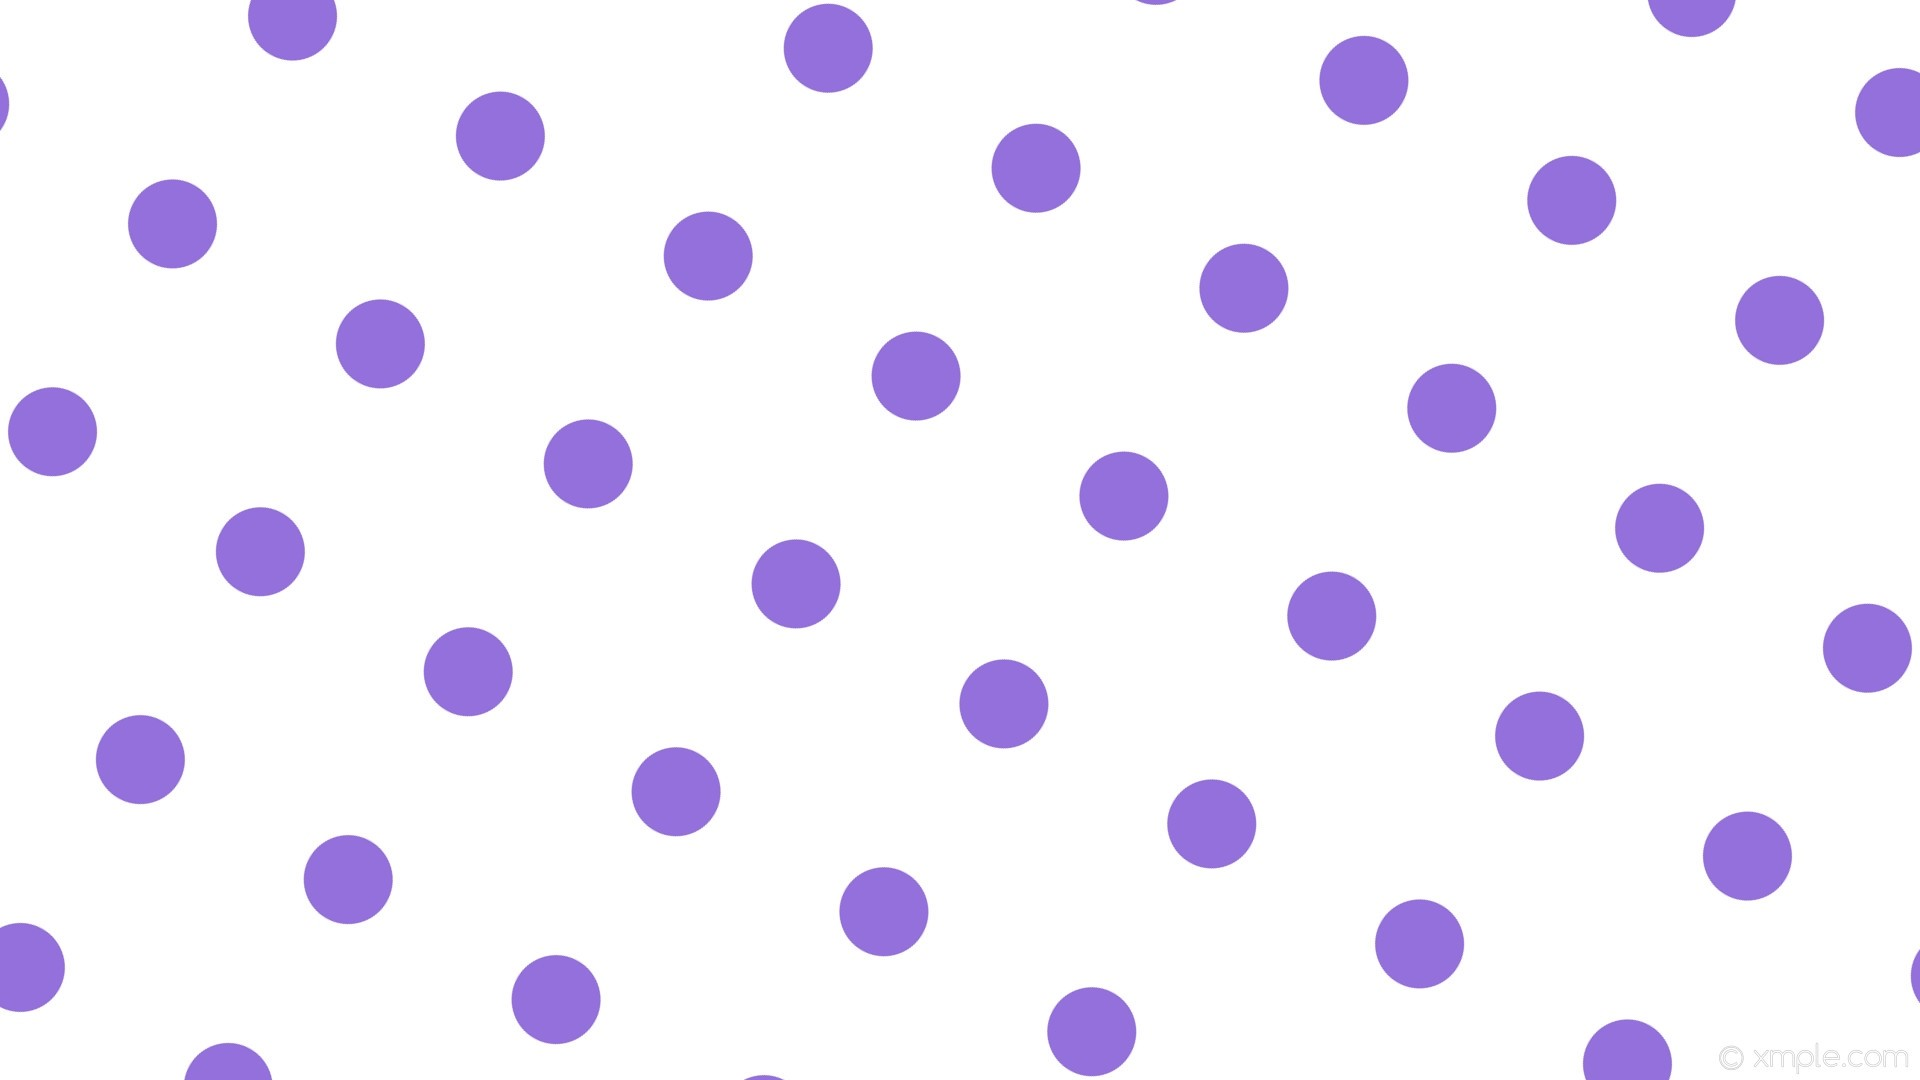 Polka Dot Wallpaper Picture hd